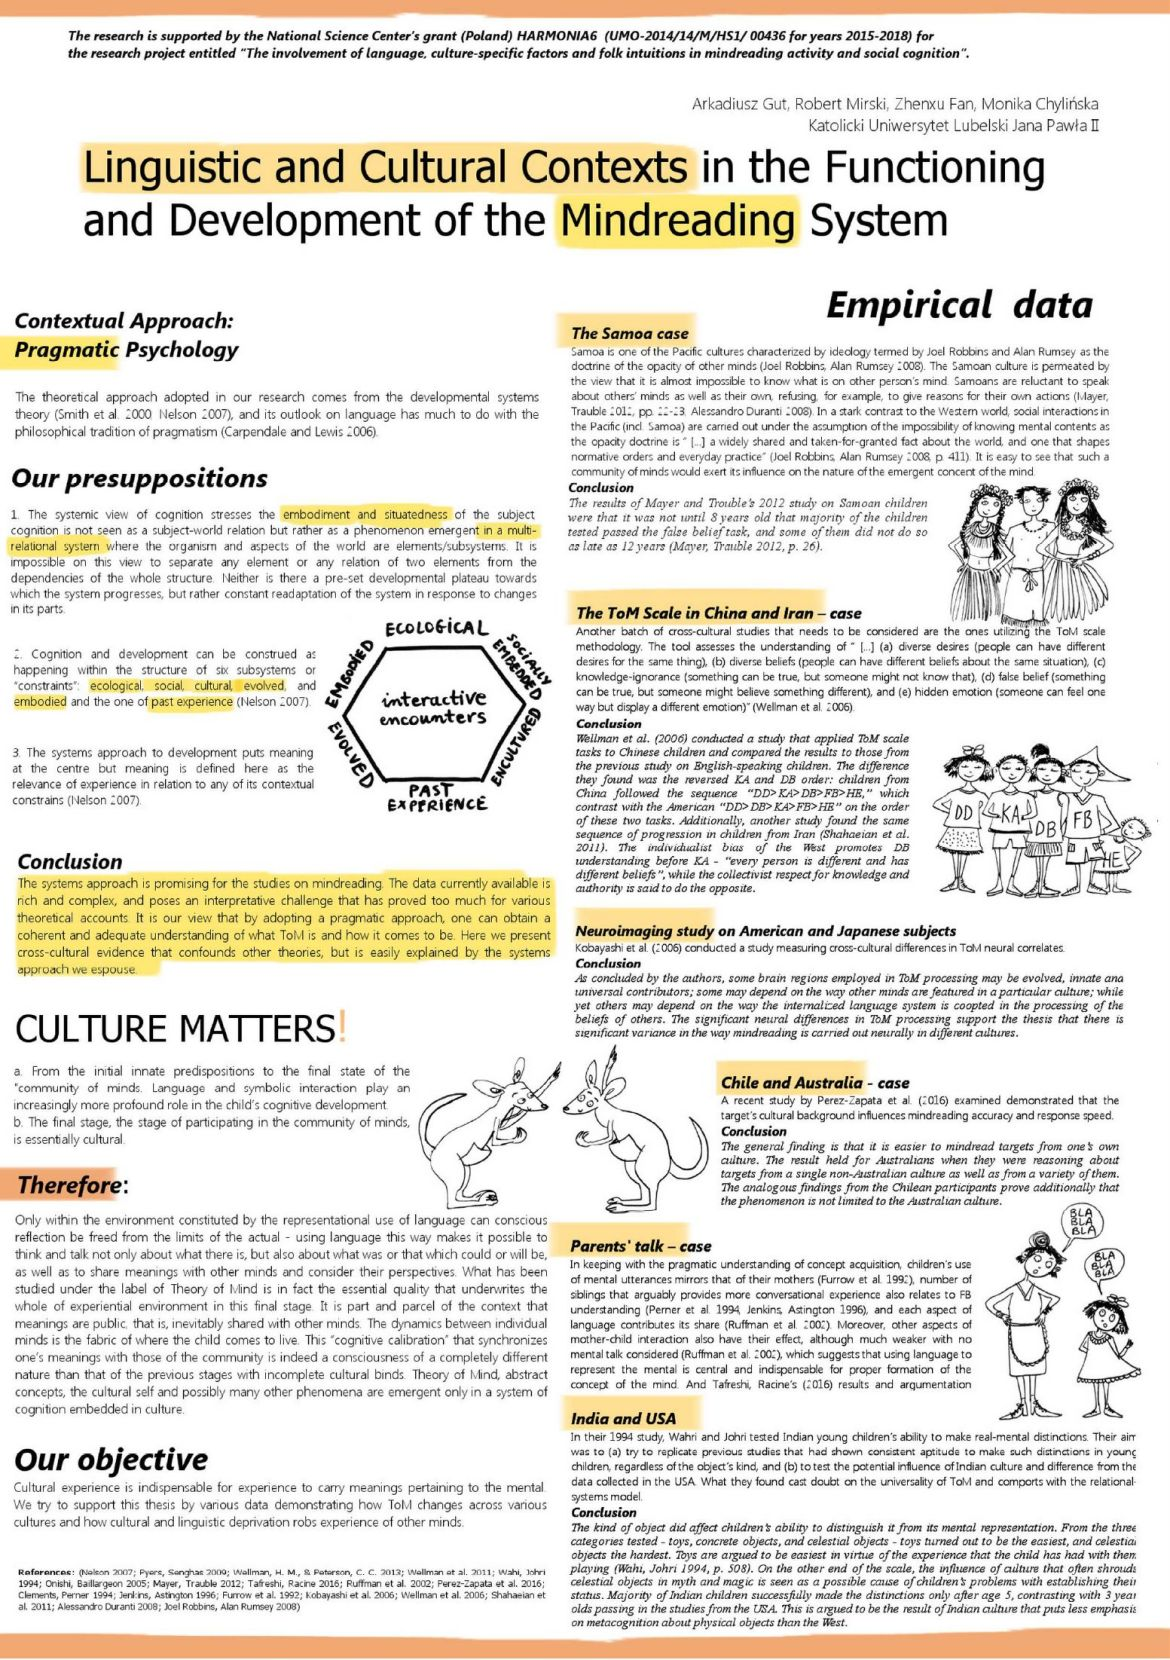 Linguistic and Cultural Contexts in the Functioning and Development of the Mindreading System [poster in pdf]